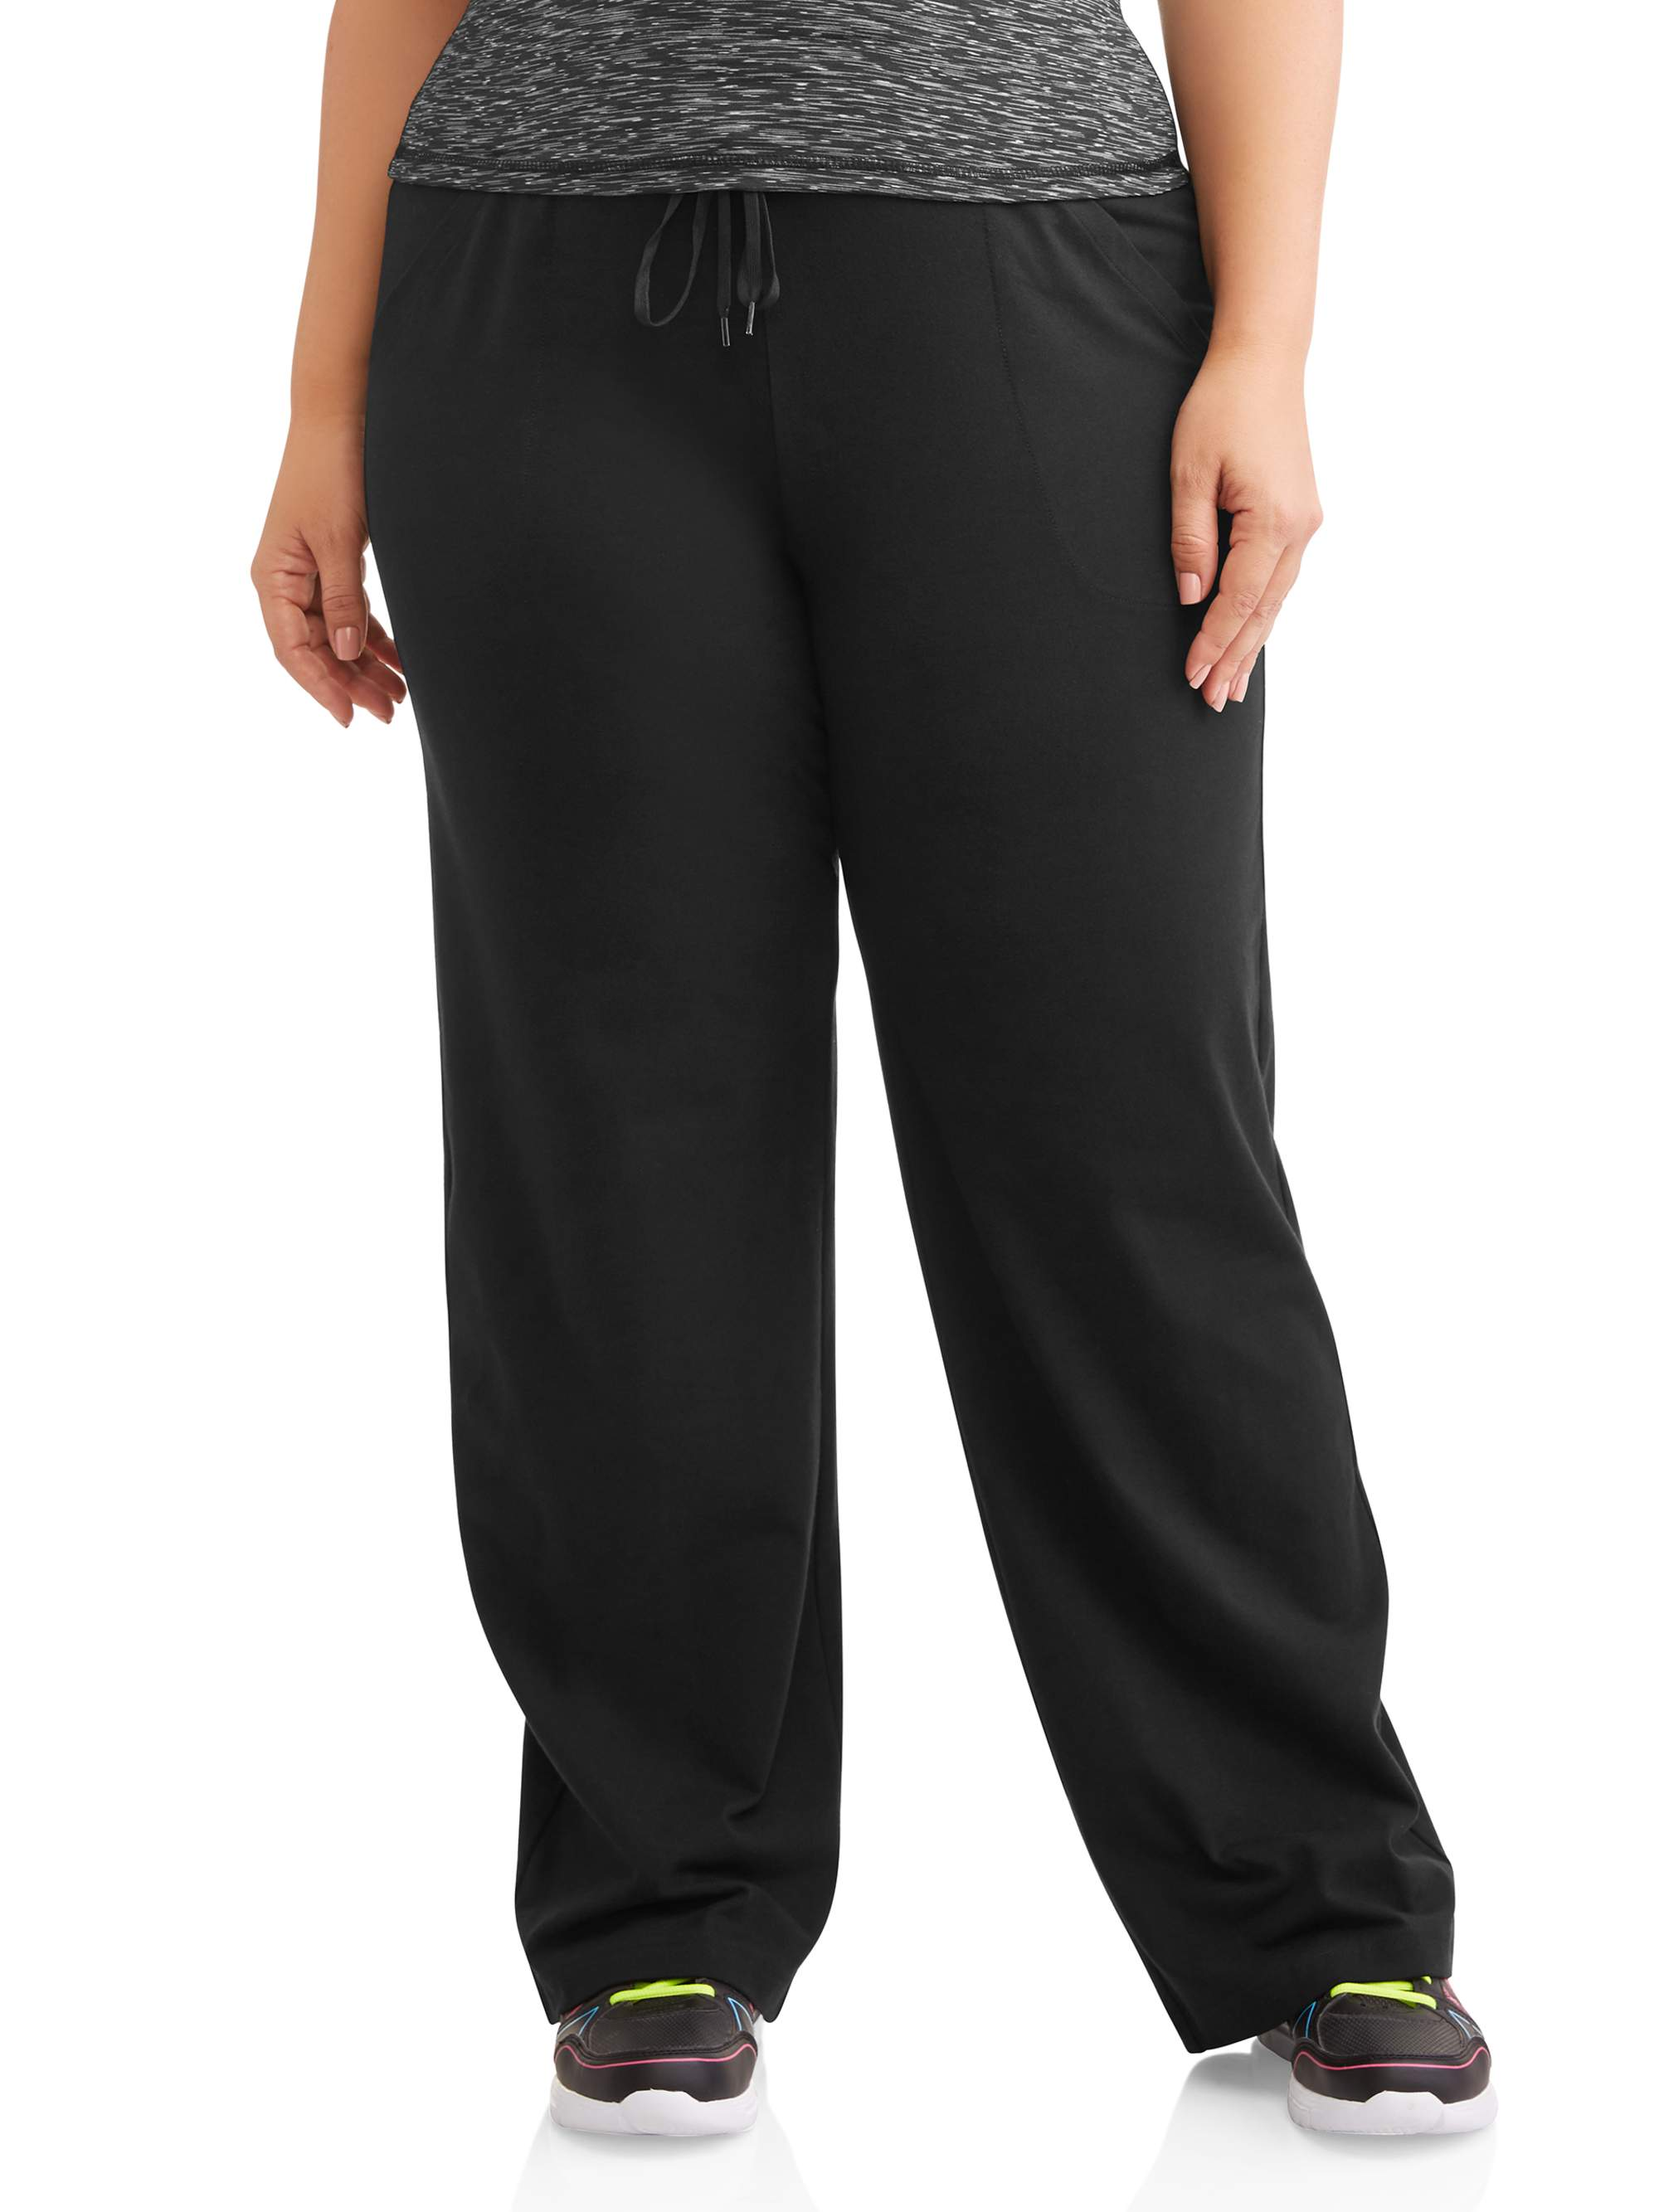 Athletic Work's Dri More Plus Relaxed Pant